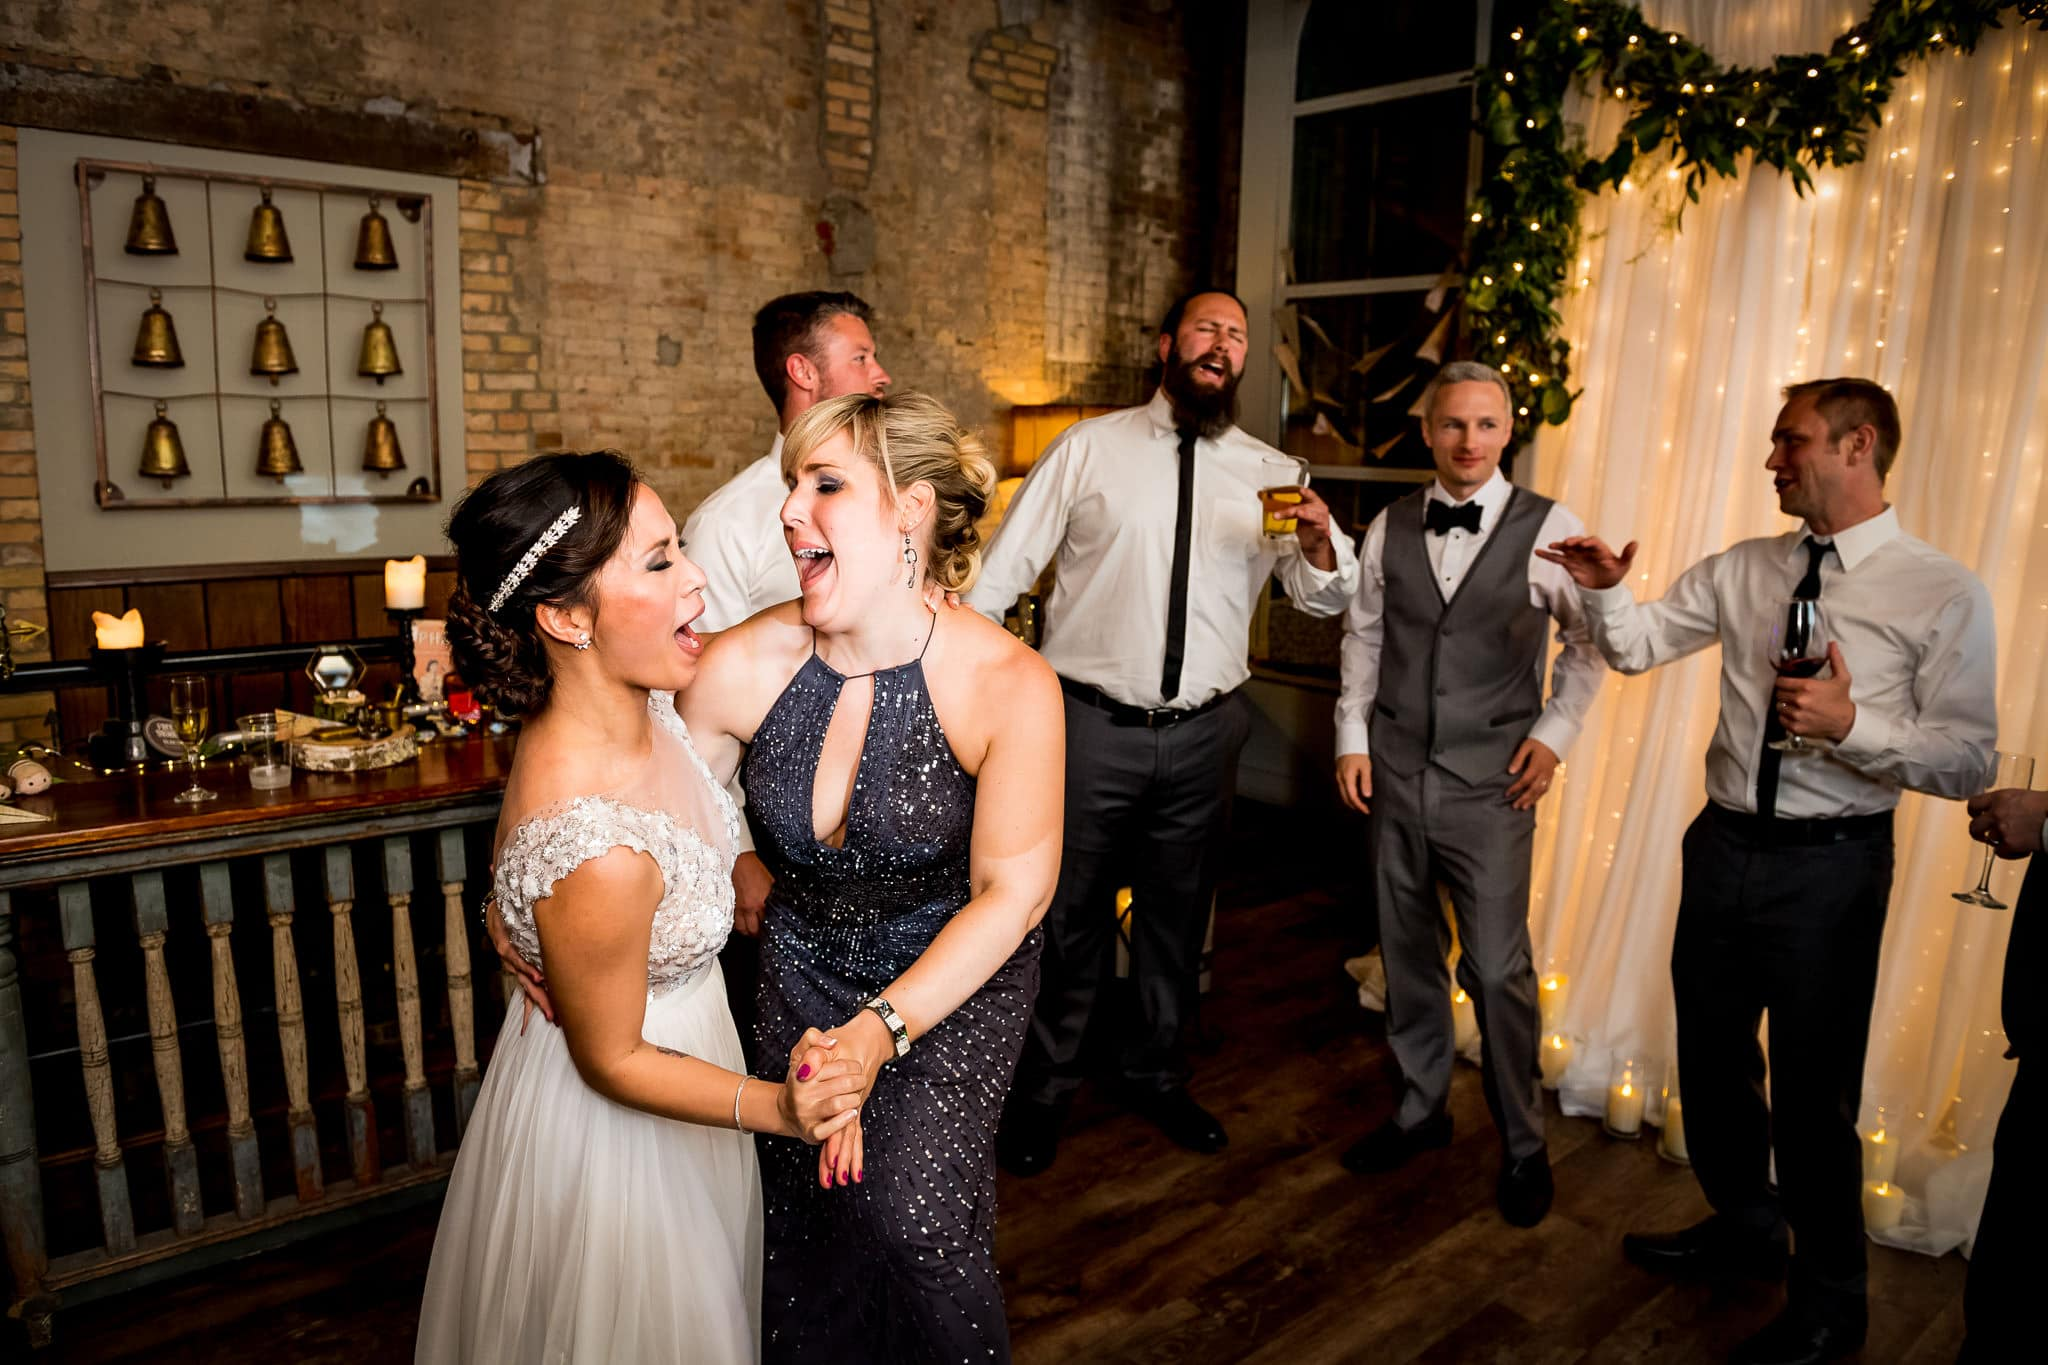 Bride and Bridesmaid sharing a fun moment on the dance floor in the River Room at Aster Cafe